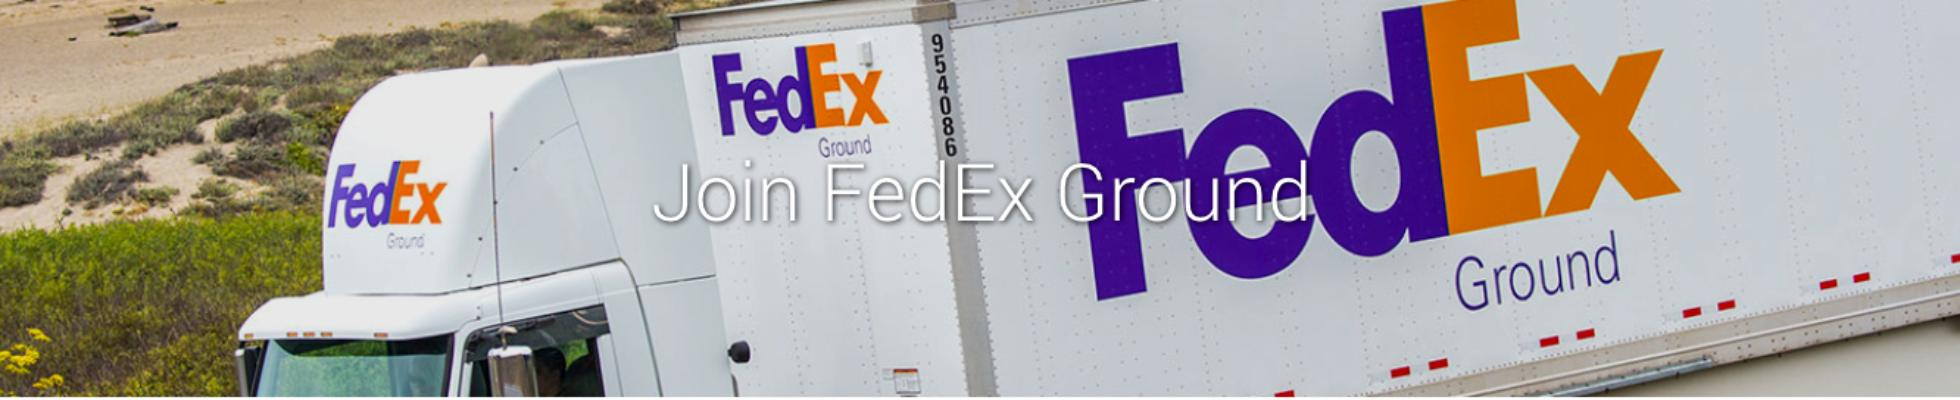 fedex ground employment and reviews